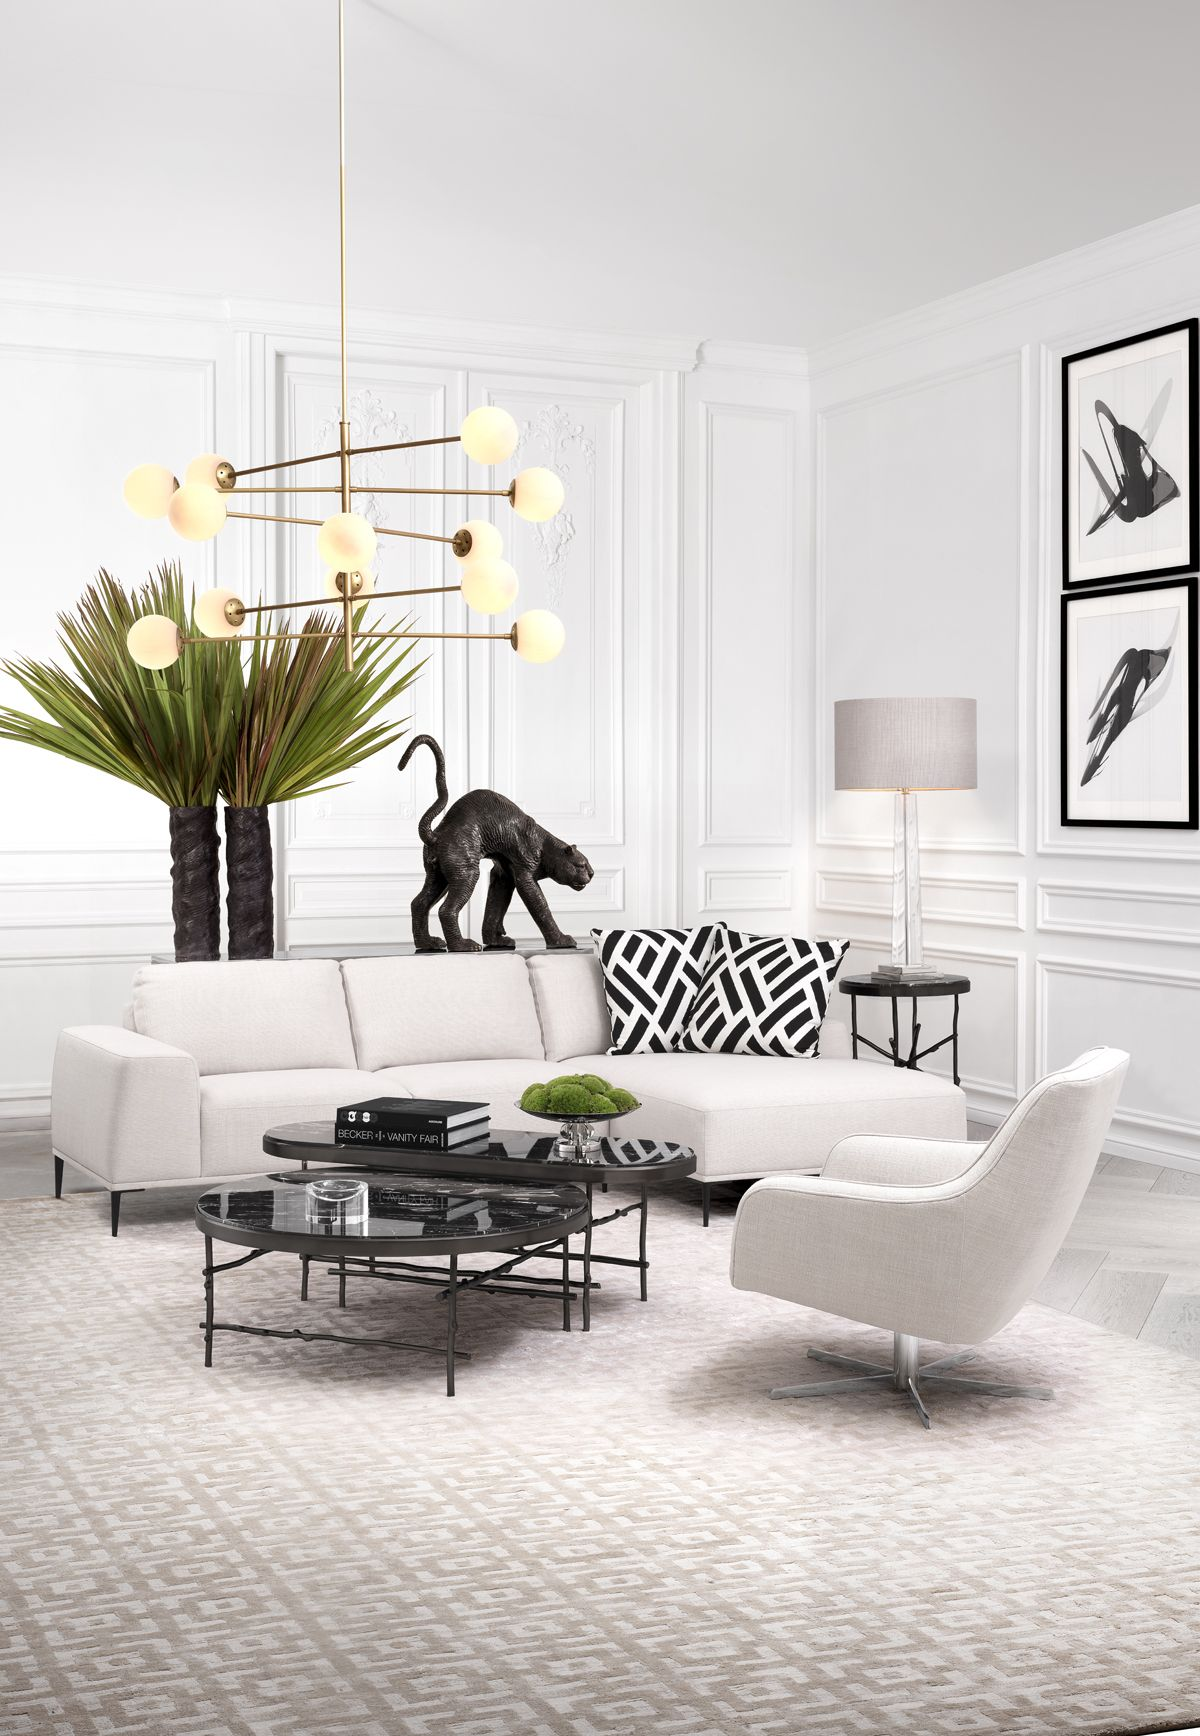 Eichholtz Furniture Lighting Home Design Bring Soothing Synergy In Your Living Space With Eichholtz Luxury Lighting White Interior Design Furniture Home [ 1736 x 1200 Pixel ]